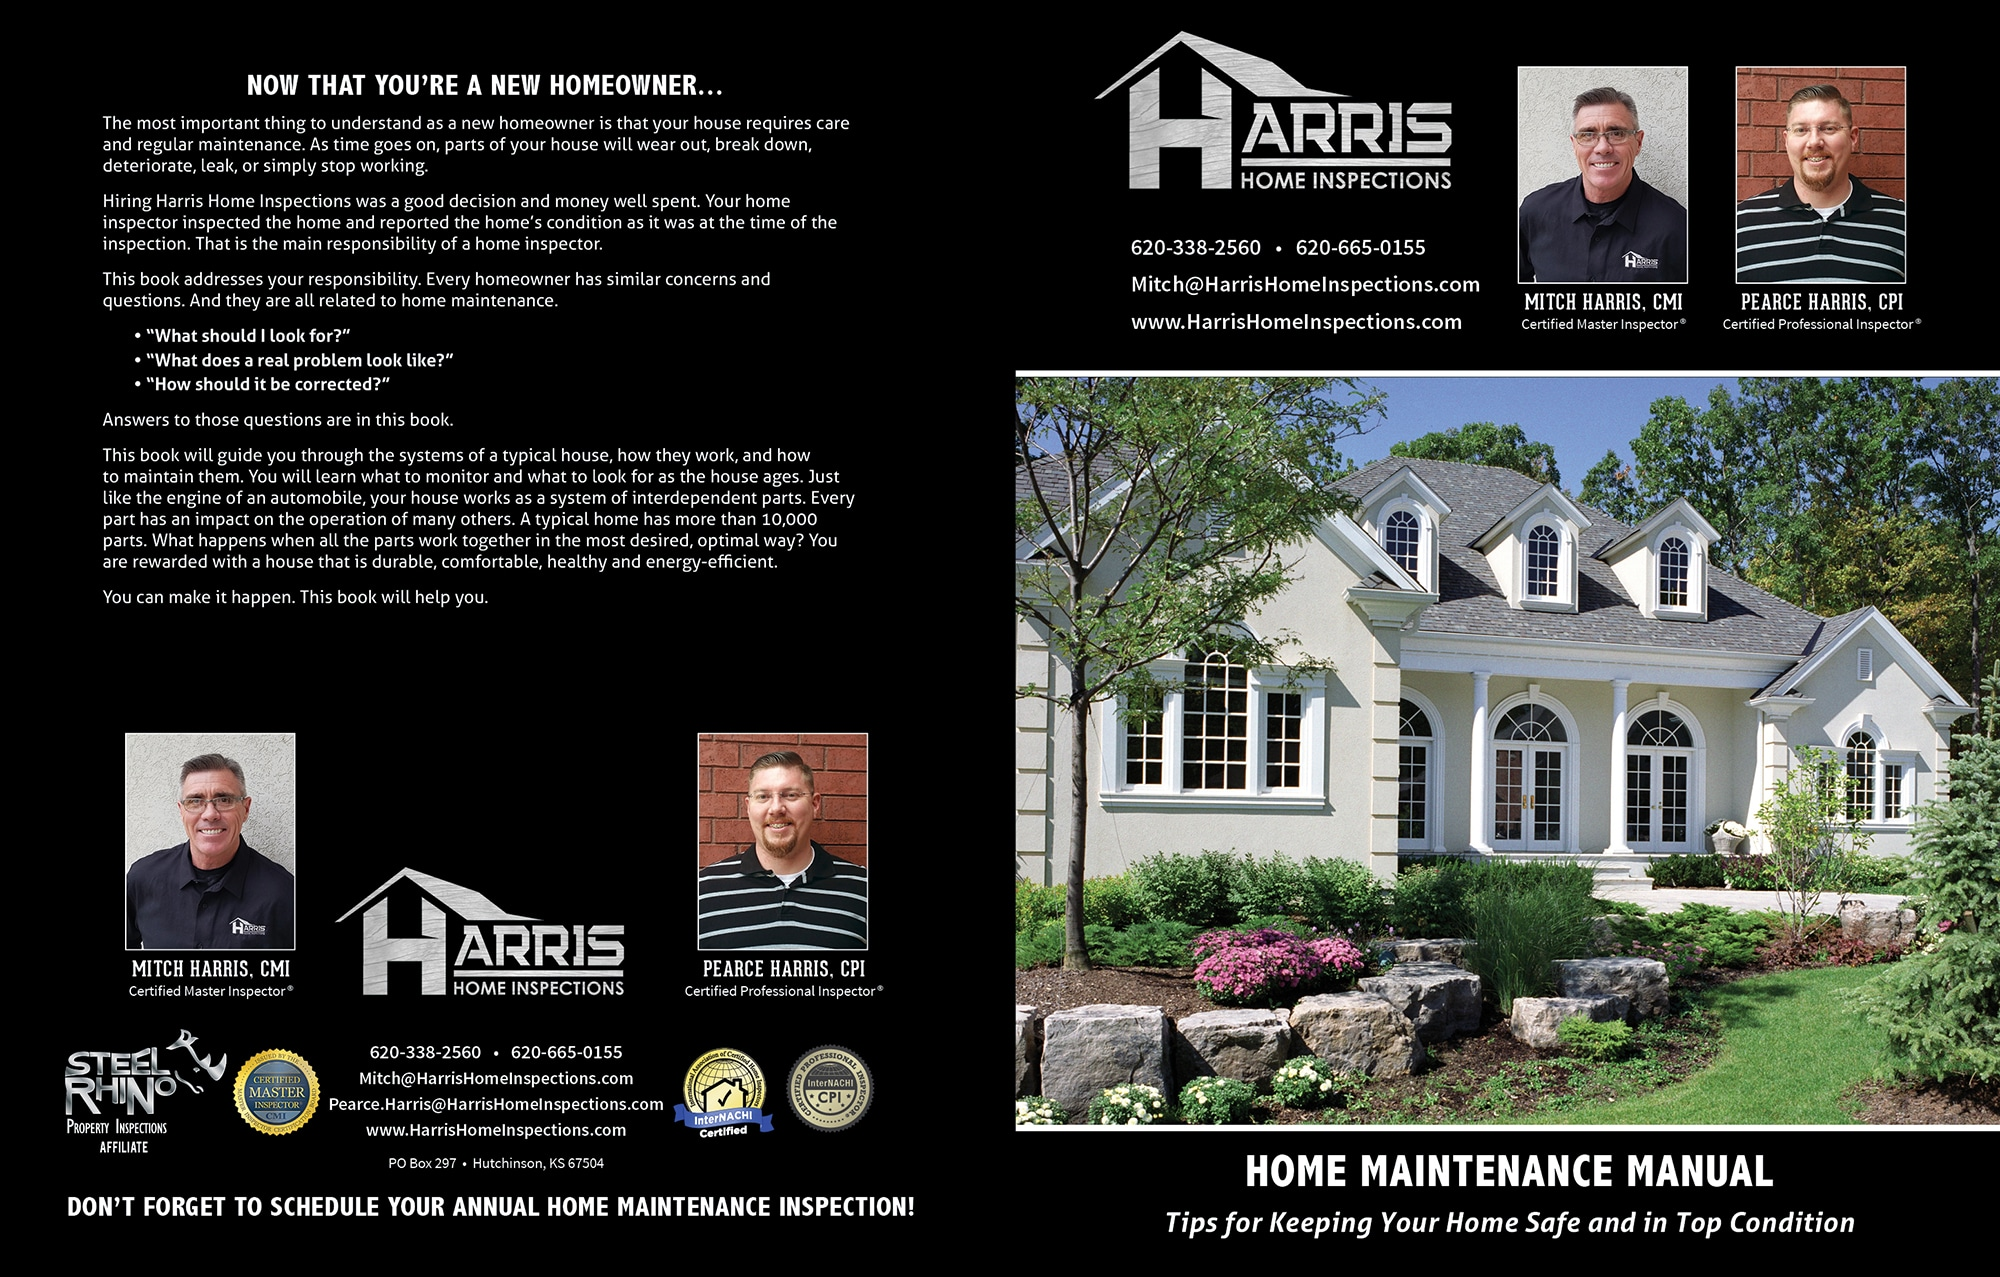 Custom Home Maintenance Book for Harris Home Inspections